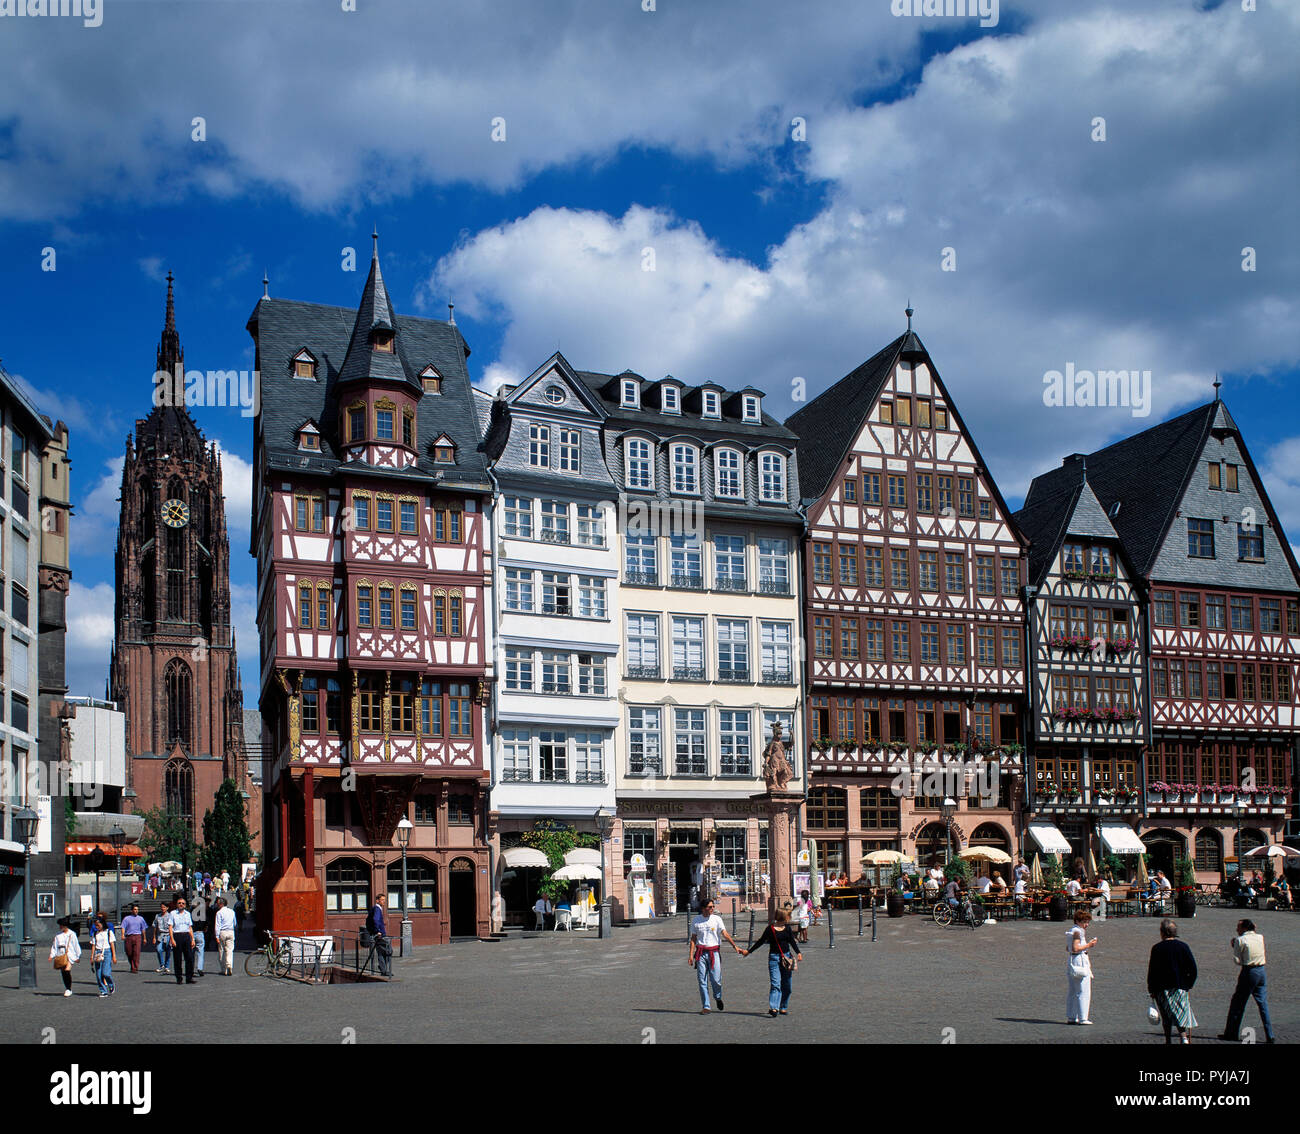 Germany. Frankfurt. Old quarter square with view of Romer cathedral. - Stock Image